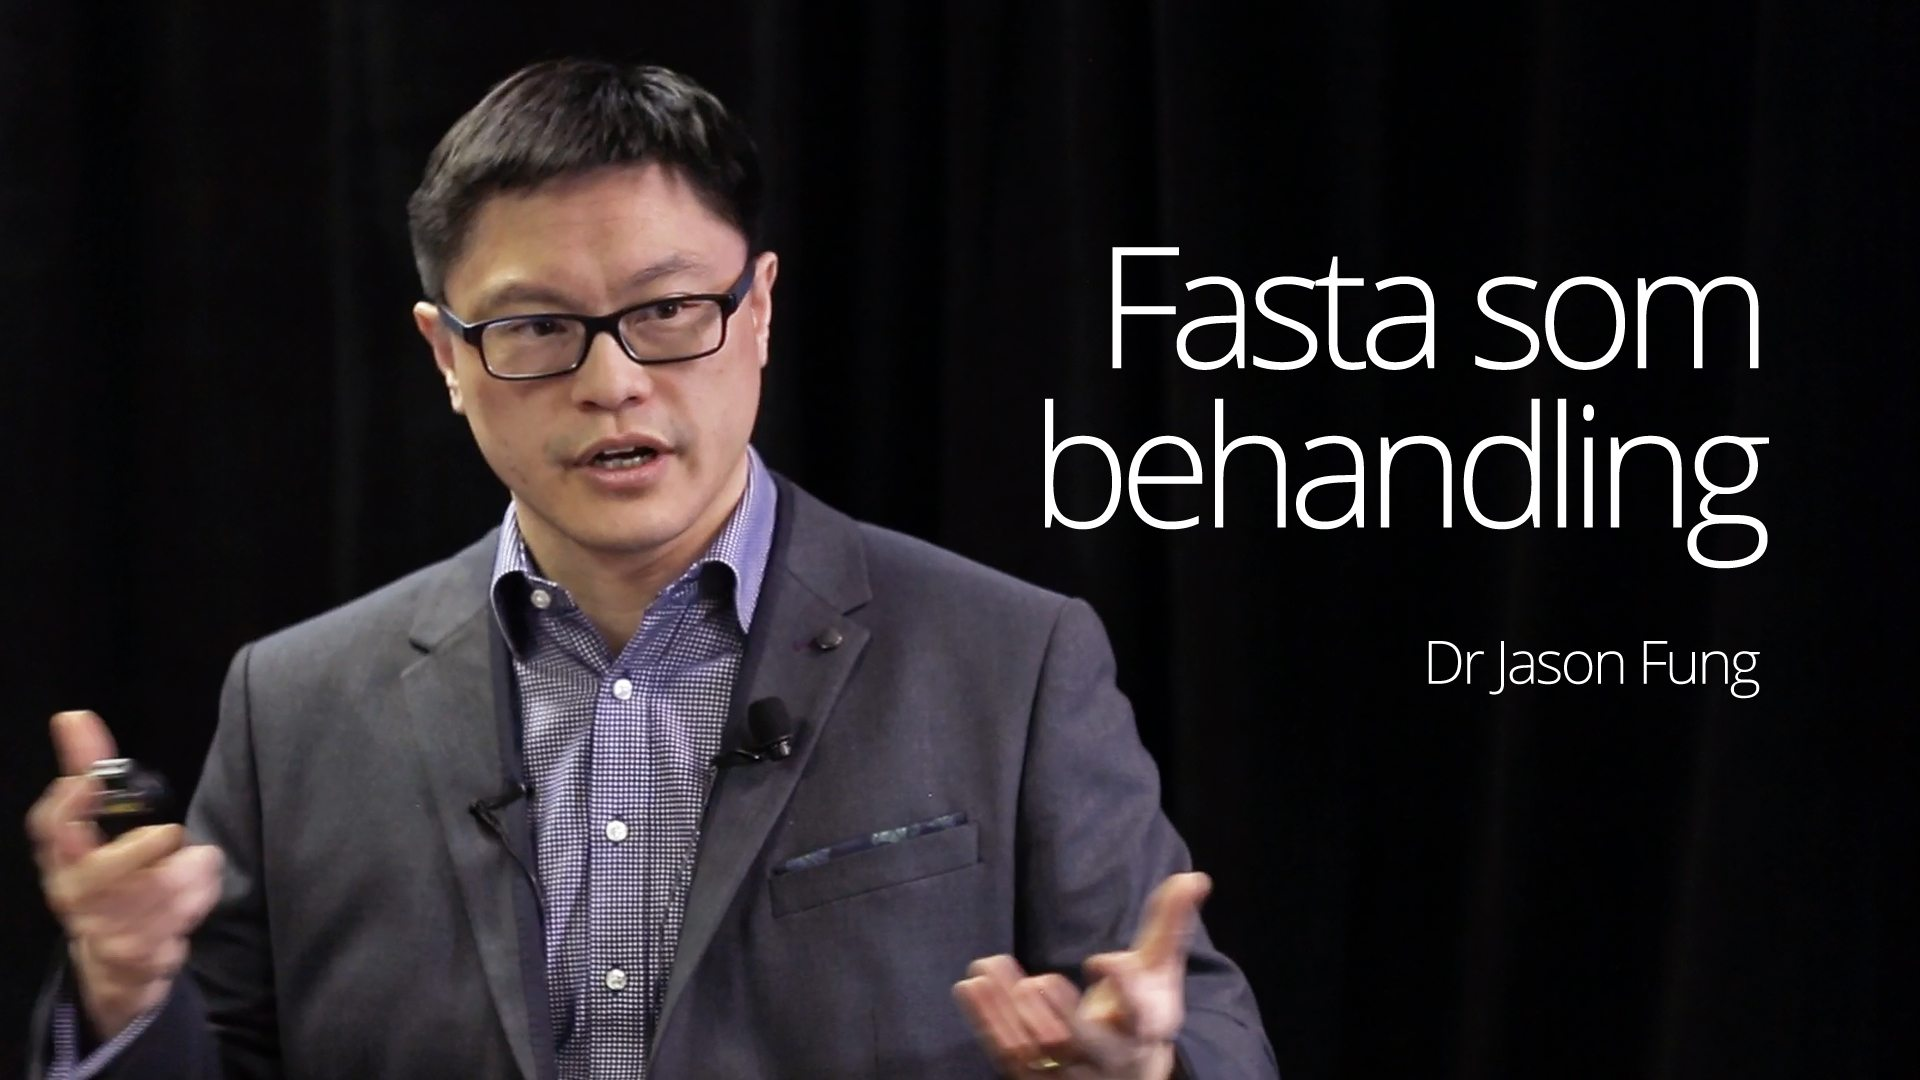 Dr. Jason Fung - Therapeutic Fasting